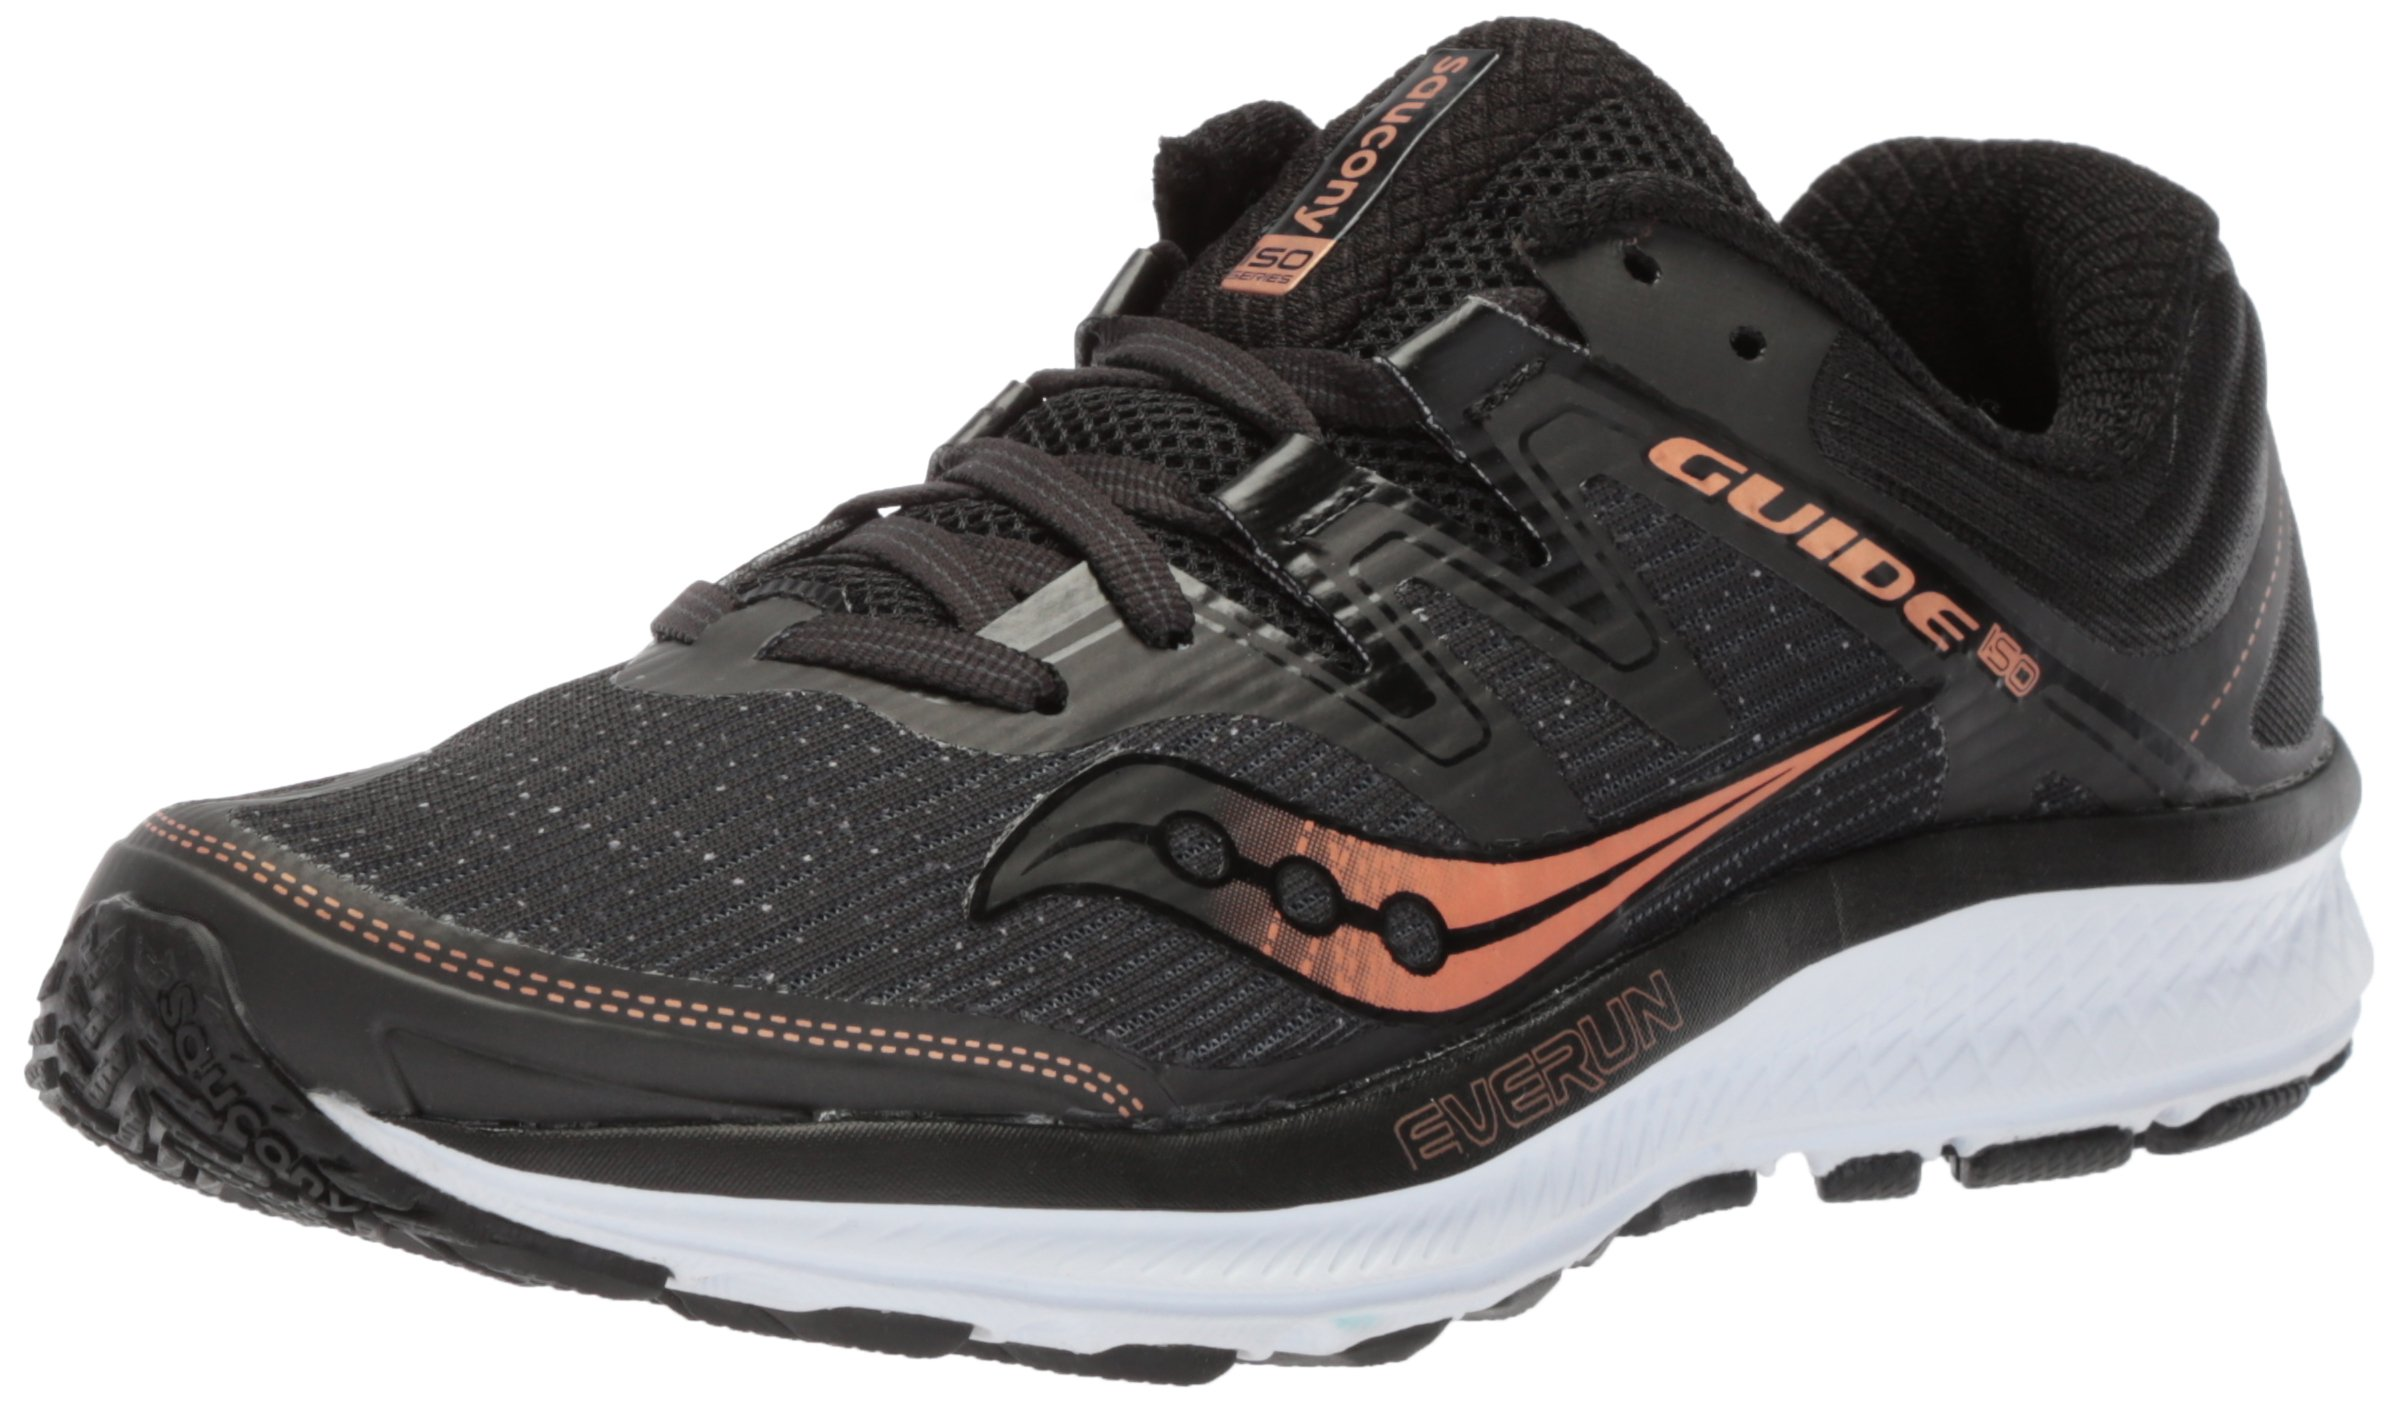 Saucony Women's Guide Iso Running Shoe, Black/Denim, 10.5 Medium US by Saucony (Image #1)